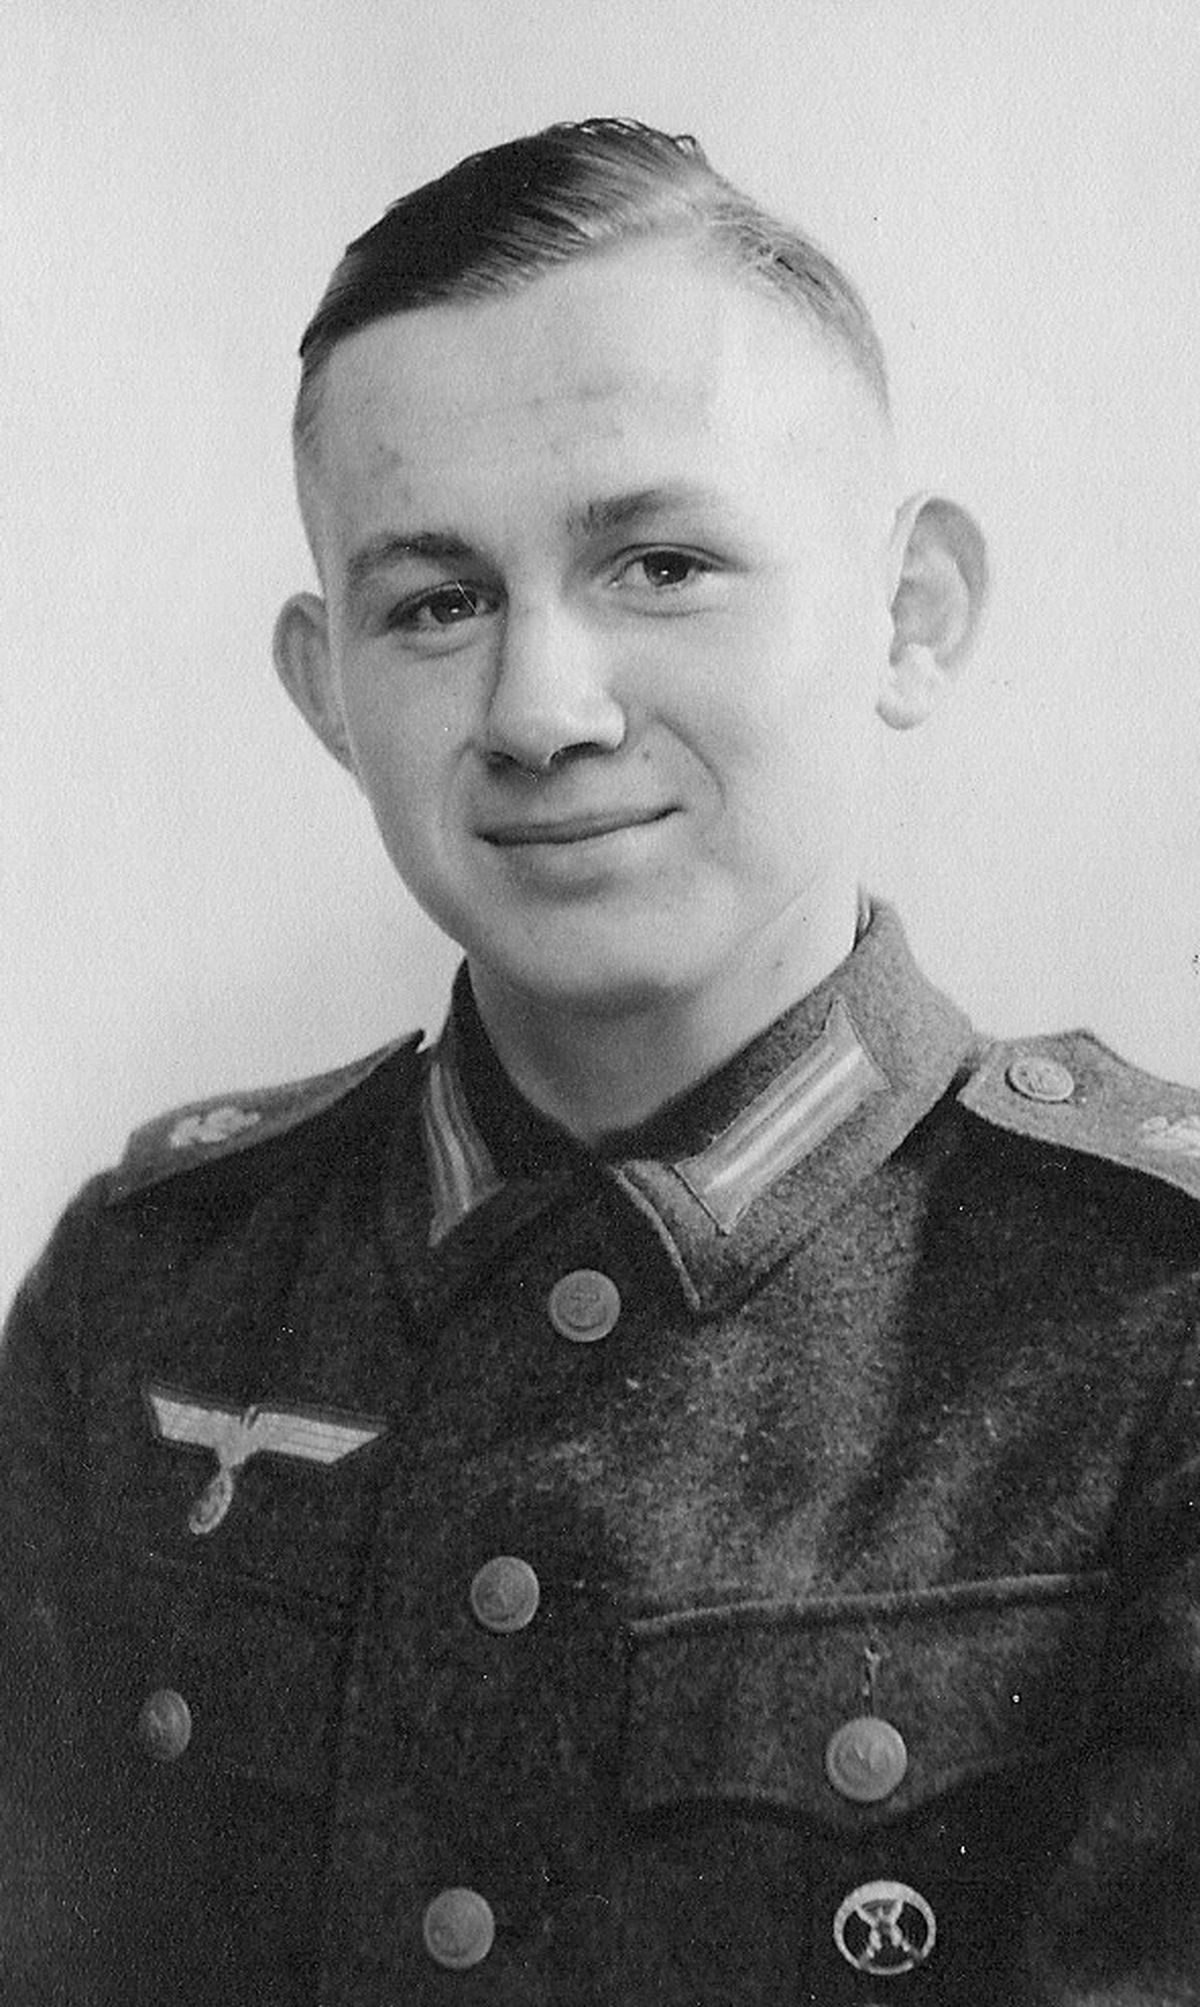 Heini in 1942 during initial training.